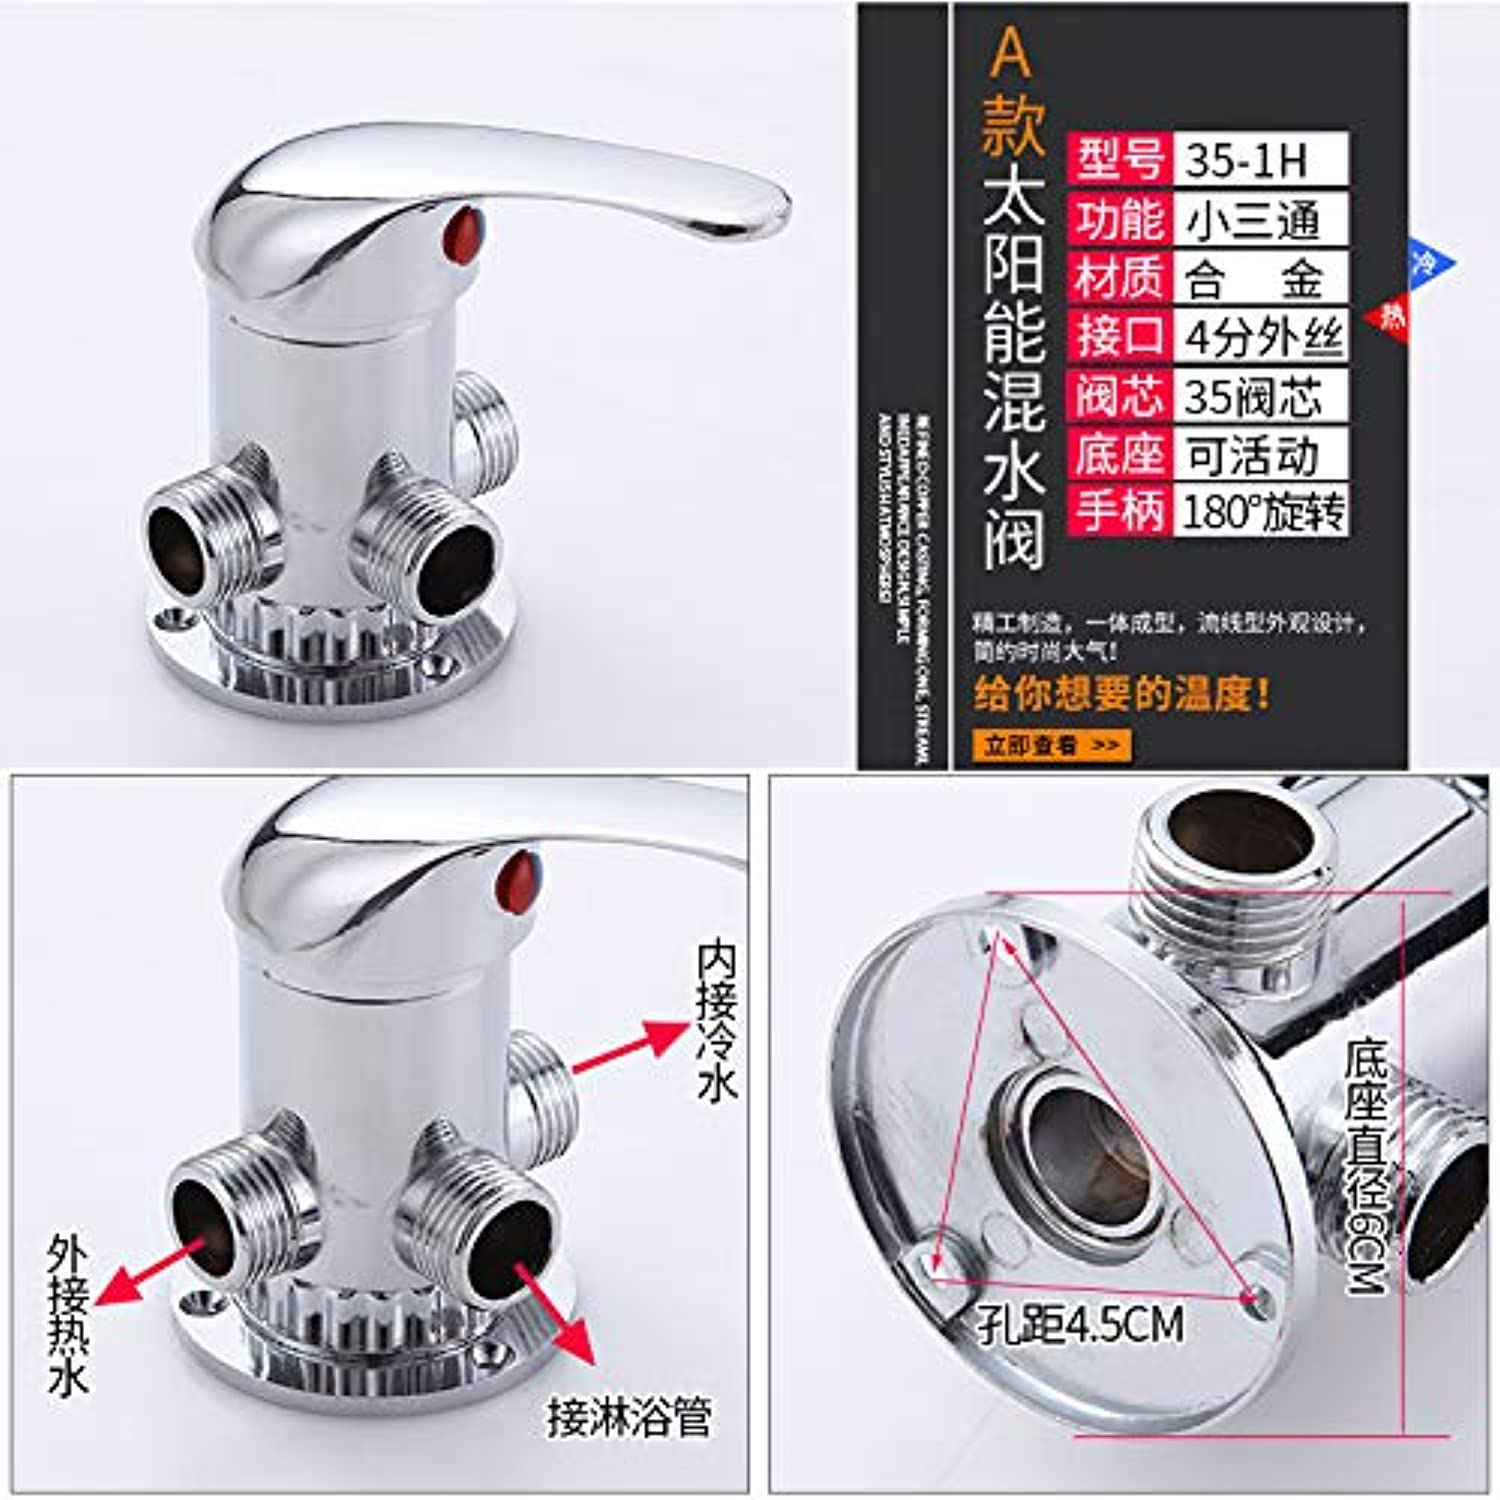 redOOY Shower faucet water separator shower shower faucet wall-mounted faucet solar mixing valve mounted, A alloy three outer wire ‖ handle 180 degrees on the water